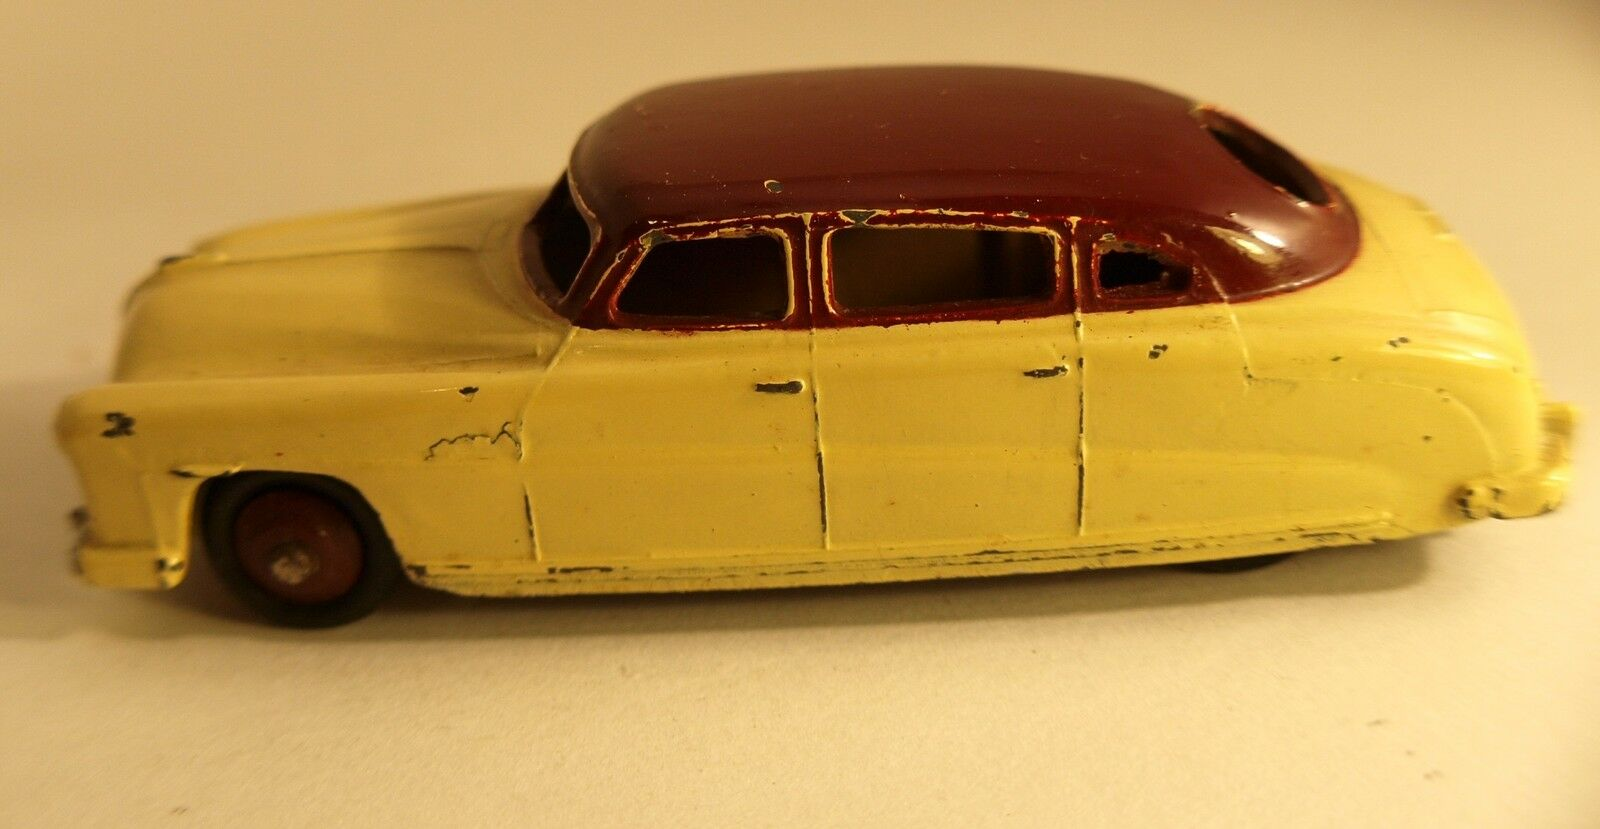 Dinky Juguetes GB N º 171 Hudson Sedan Commodore